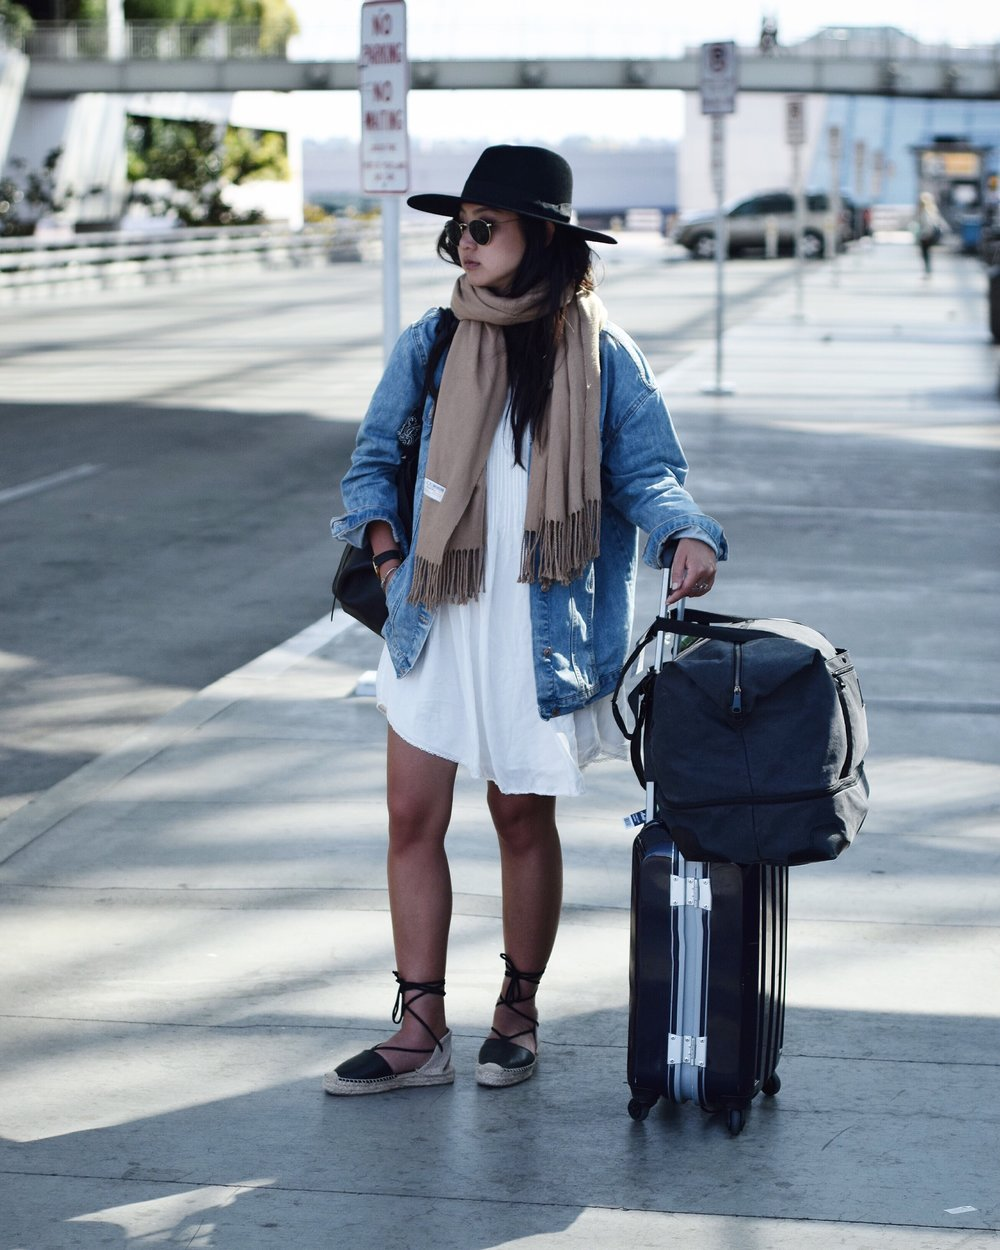 ARITZIA dress / ZARA denim jacket / SOLUDOS sandals / BRIXTON hat